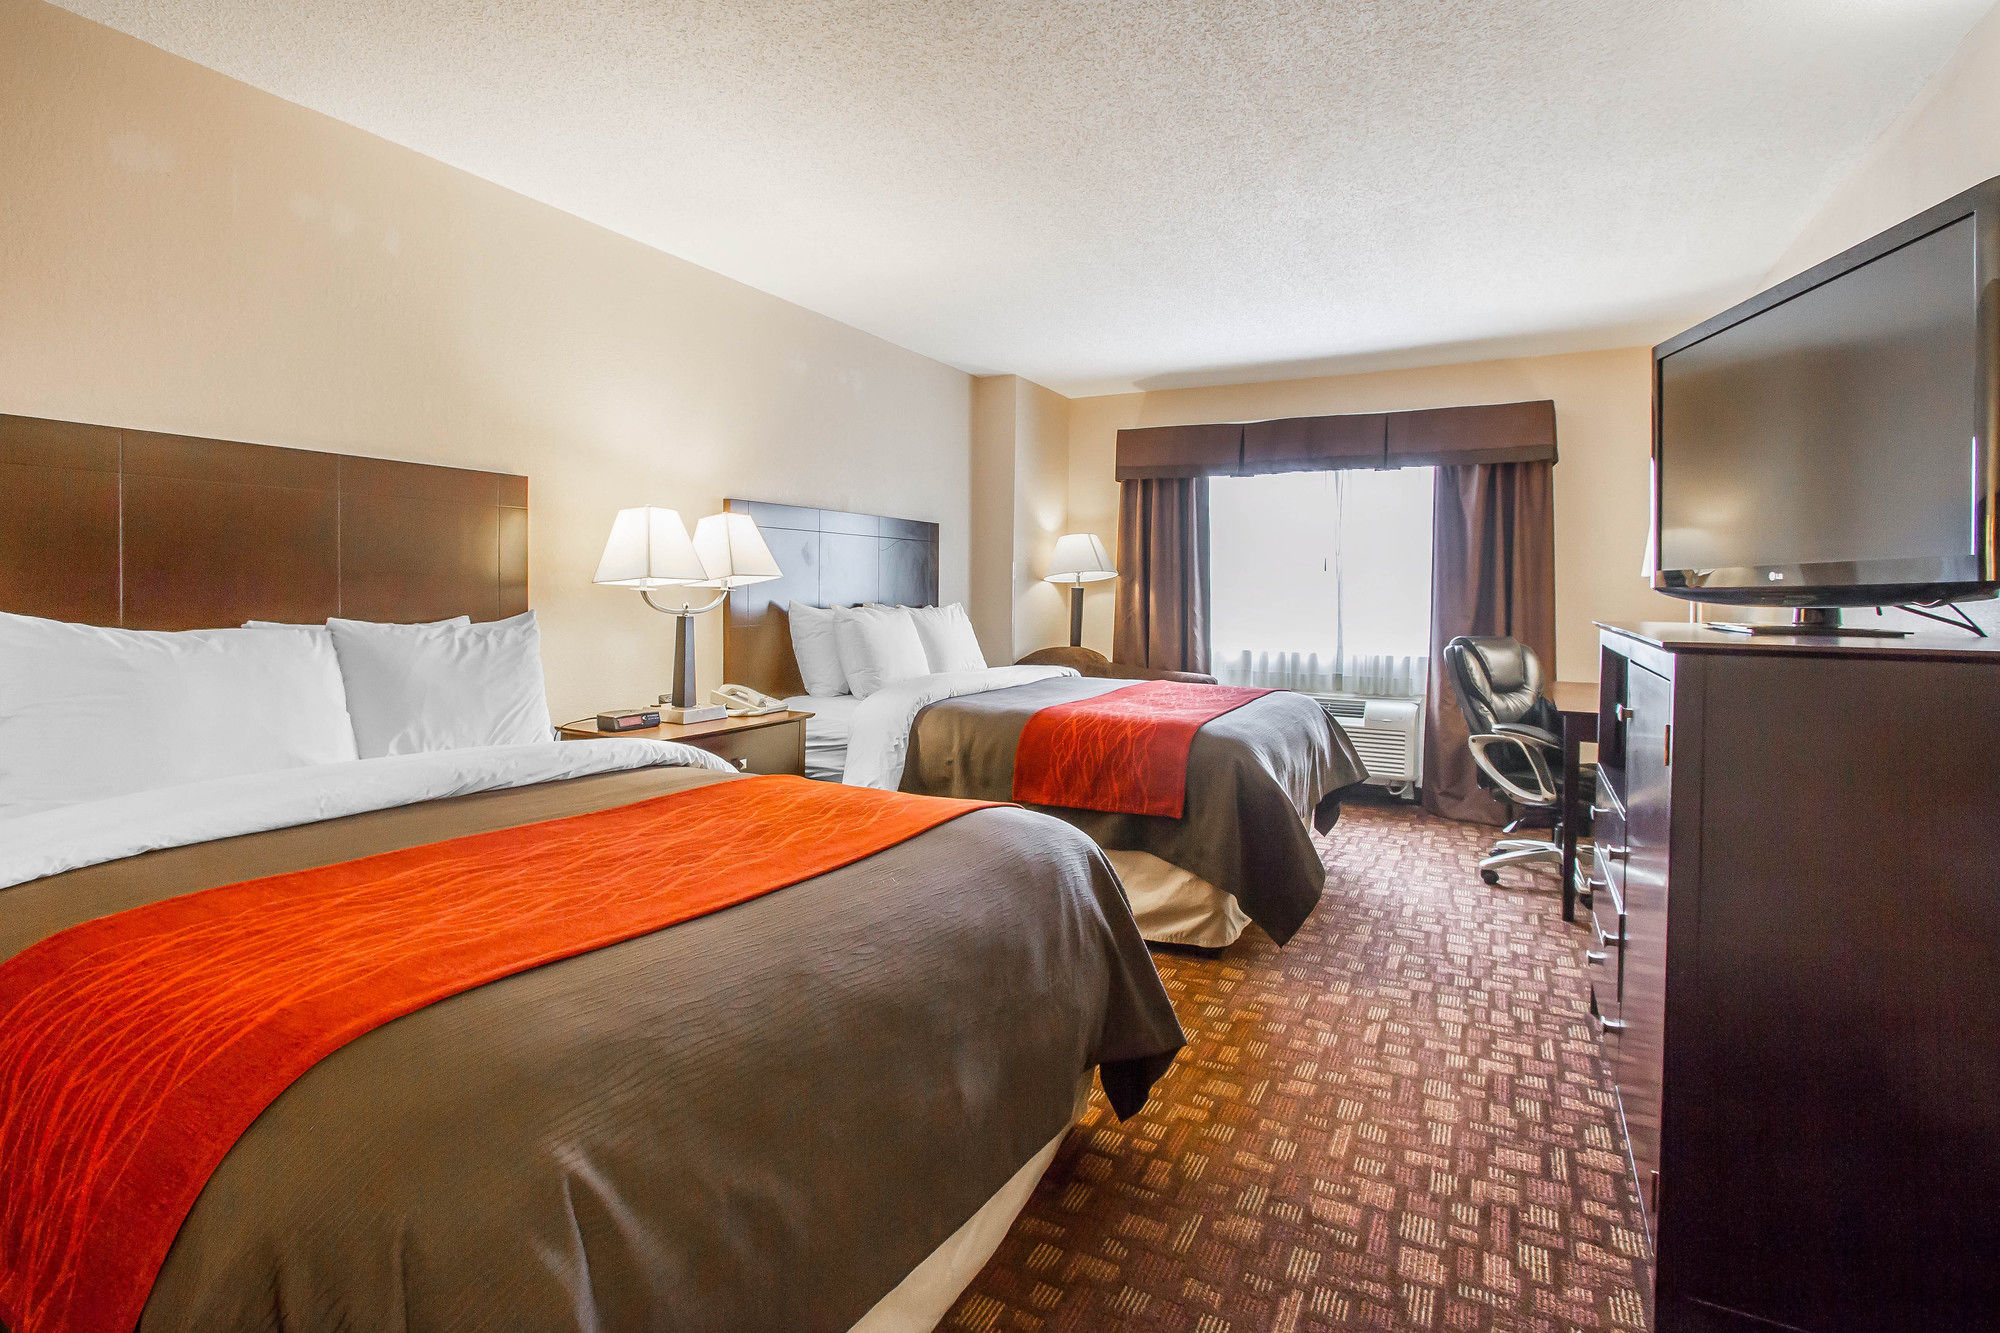 green hotel comfort freehotelcoupons inn tucson coupons valley arizona suites az for comforter hotels com